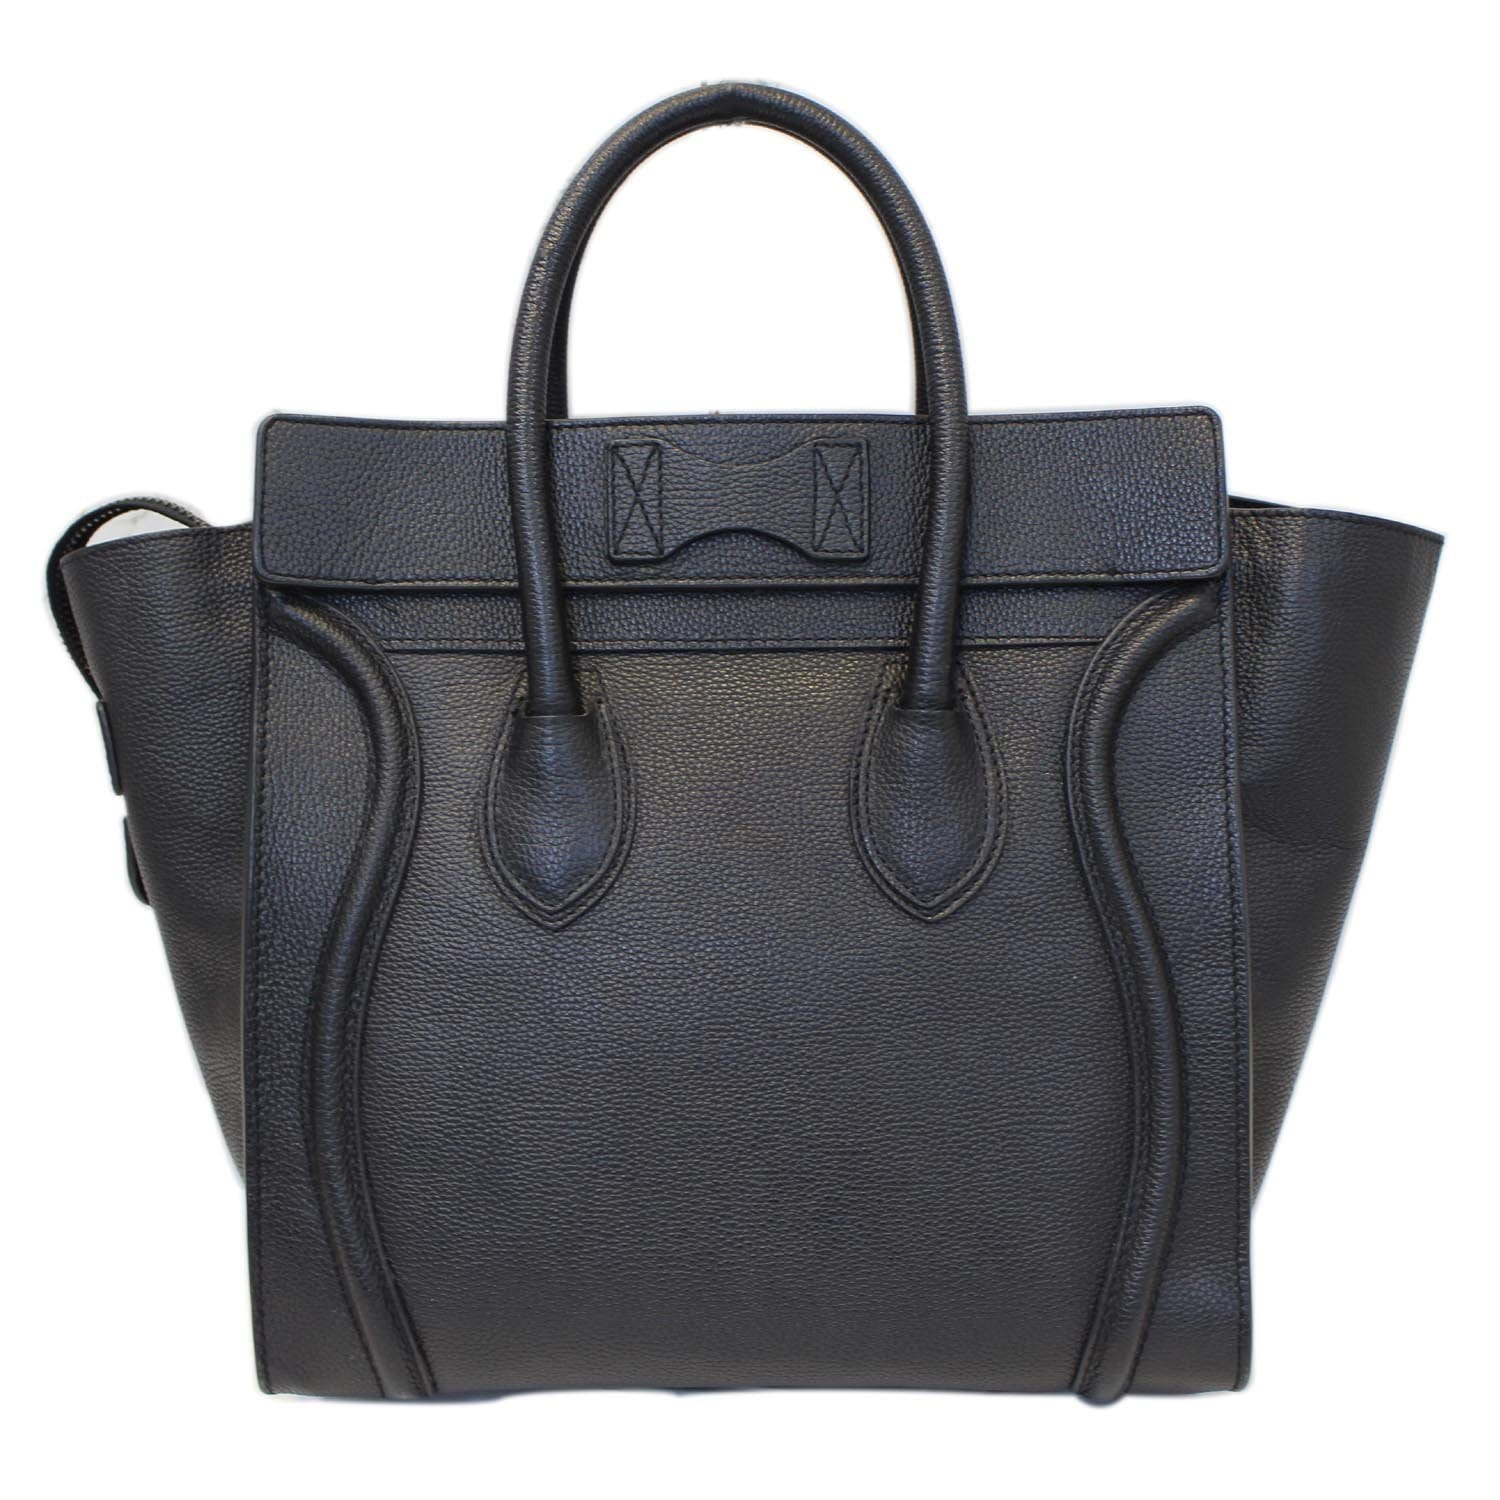 18b2a23e5cf CELINE Black Leather Mini Luggage Tote Bag-US